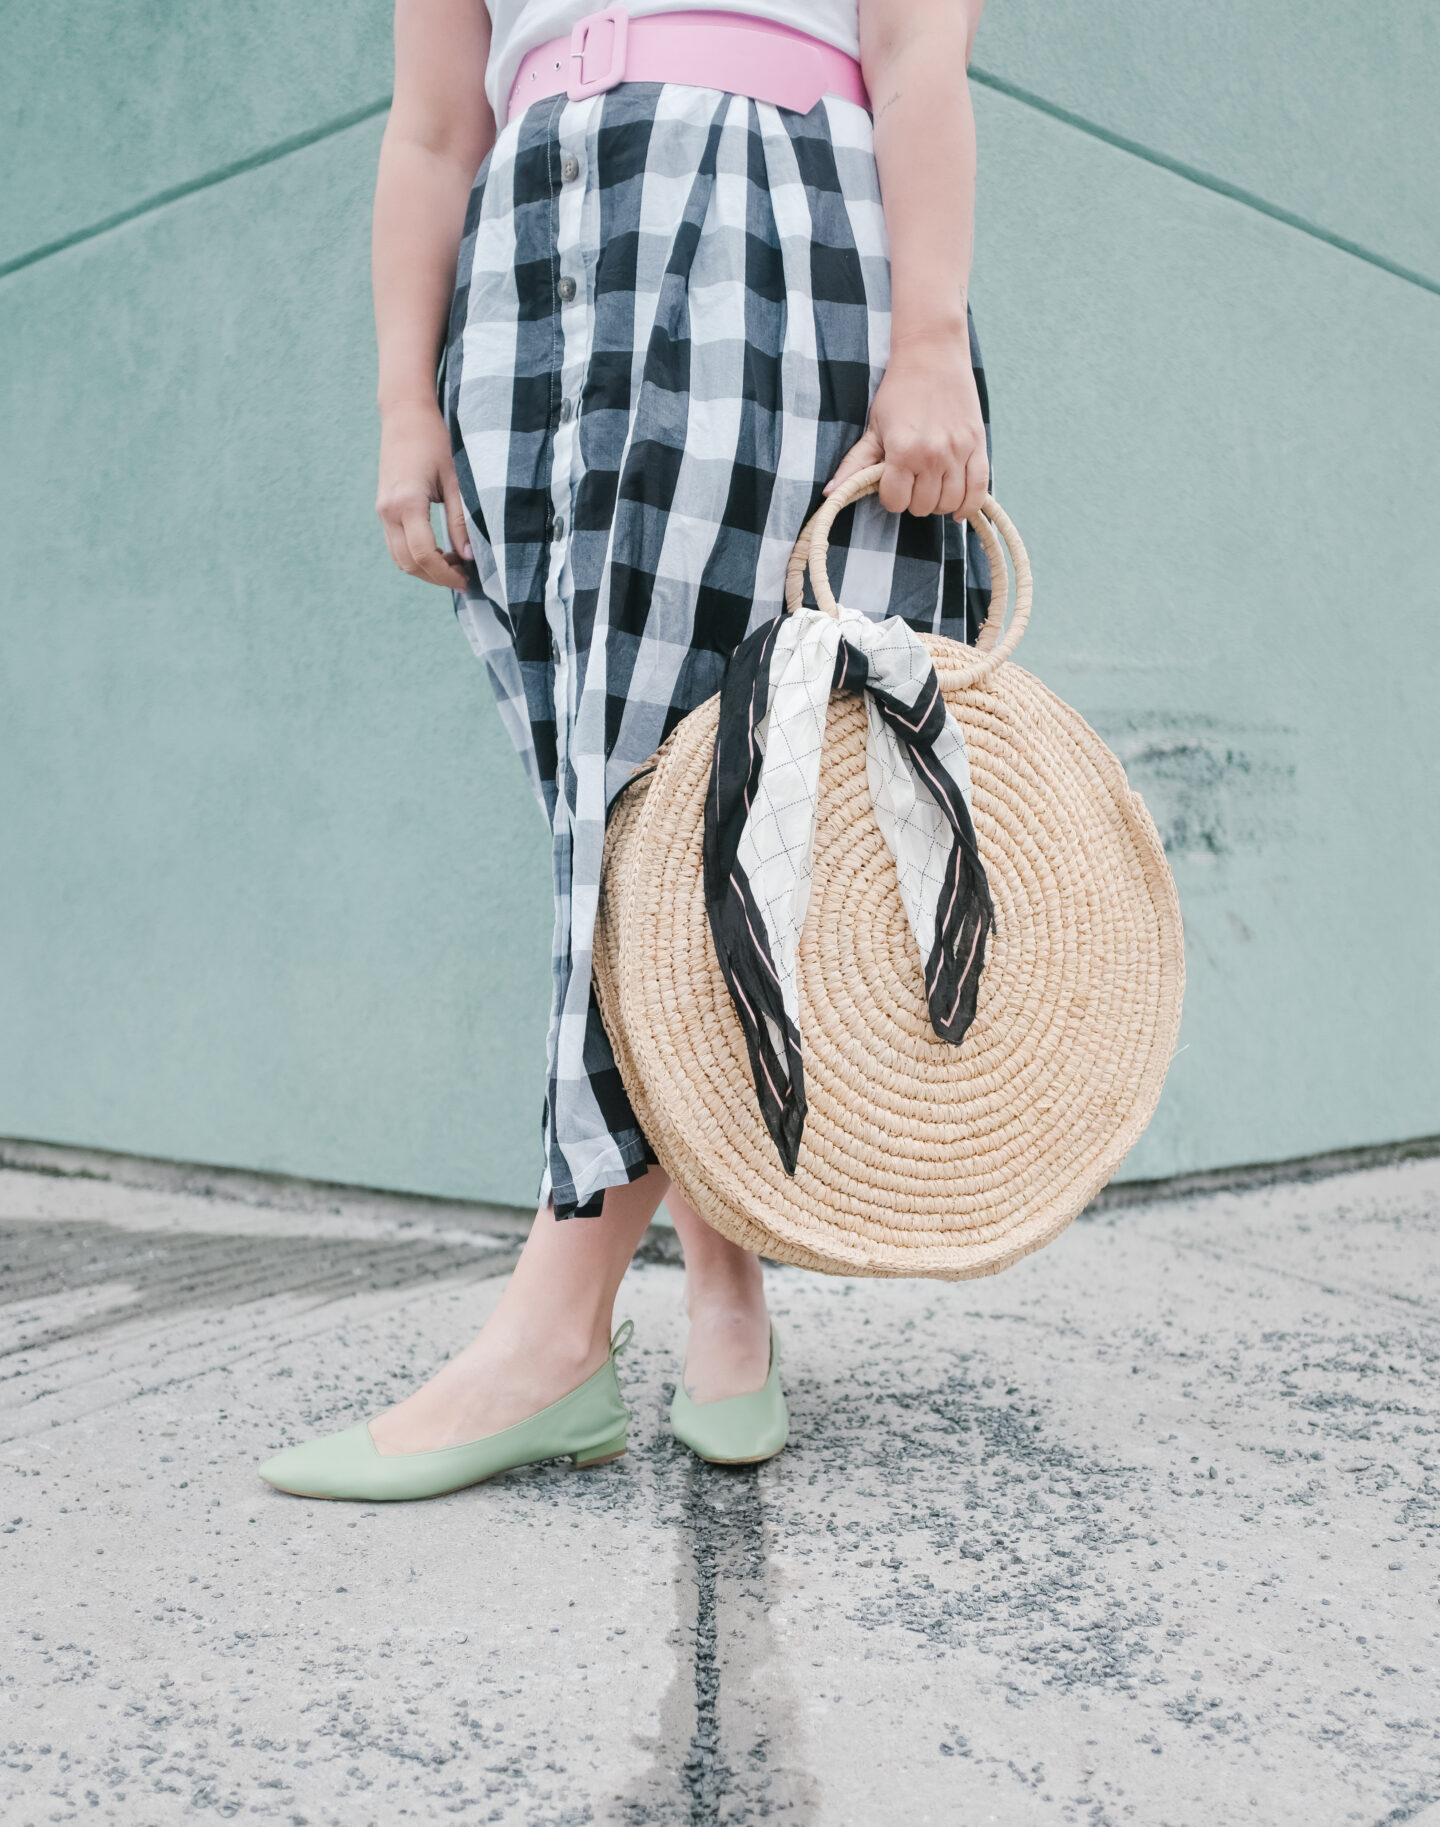 Best gingham outfits of 2020